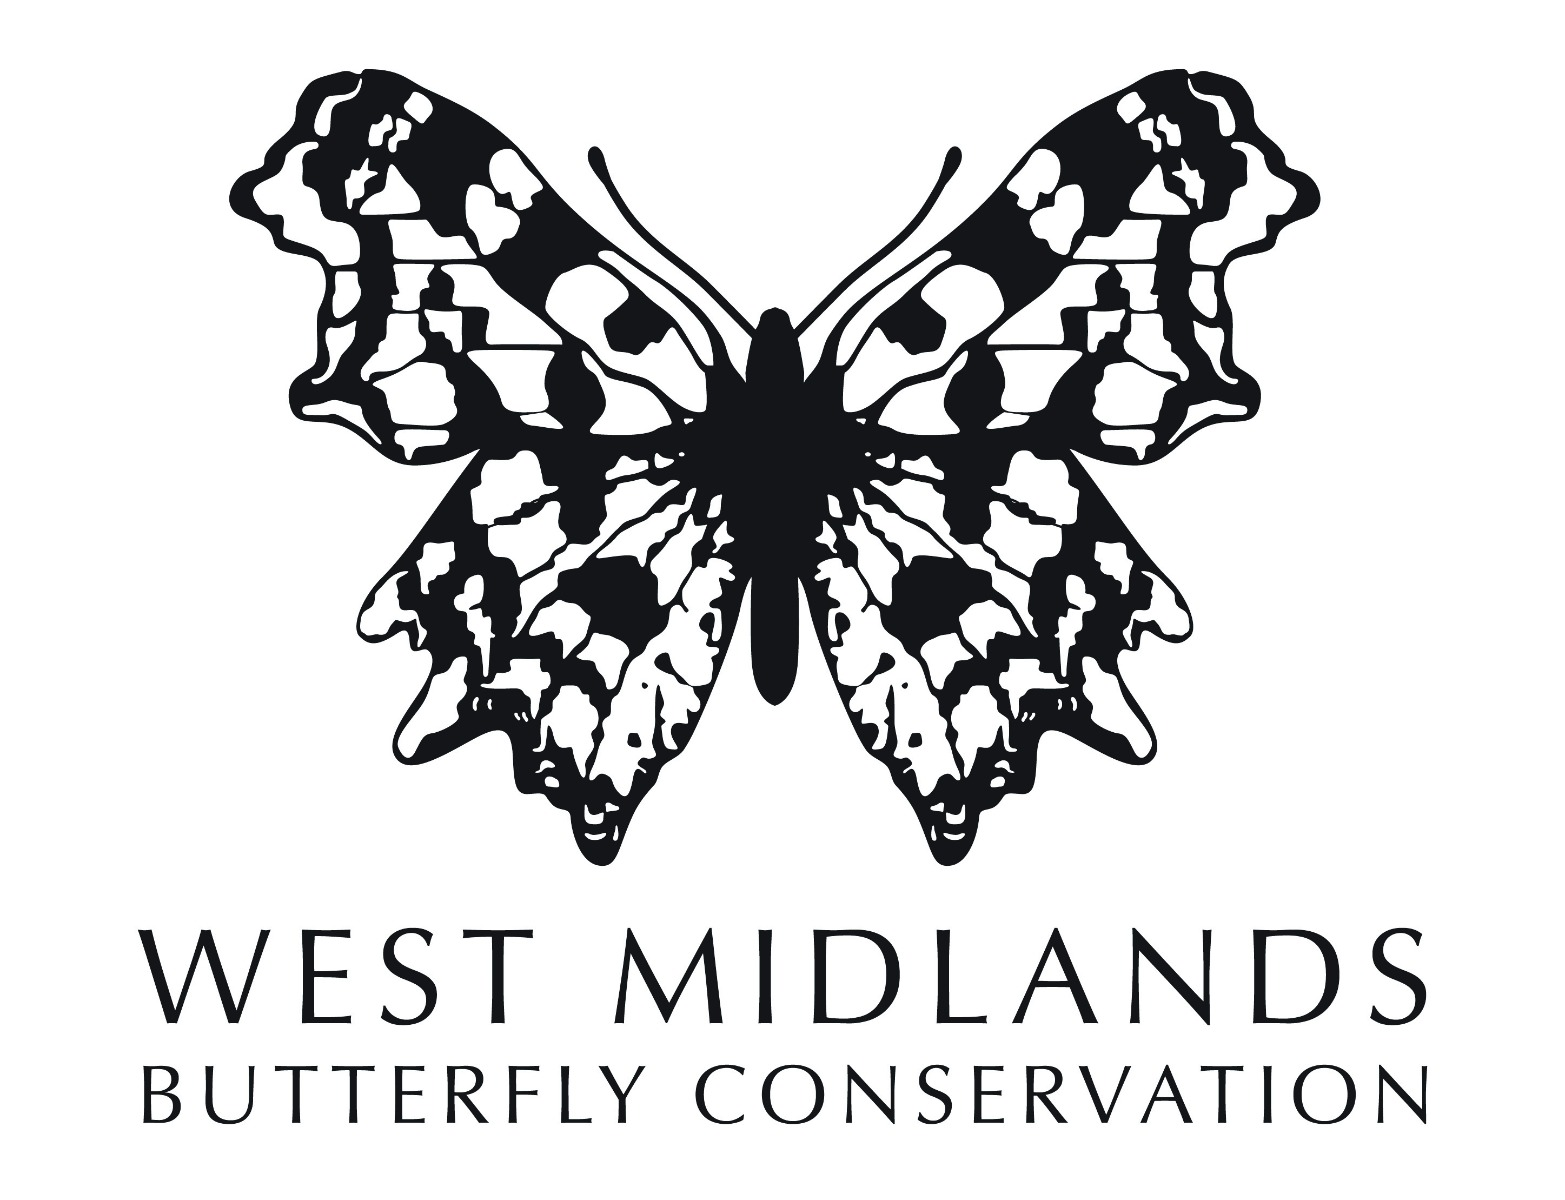 West Midlands Butterfly Conservation logo